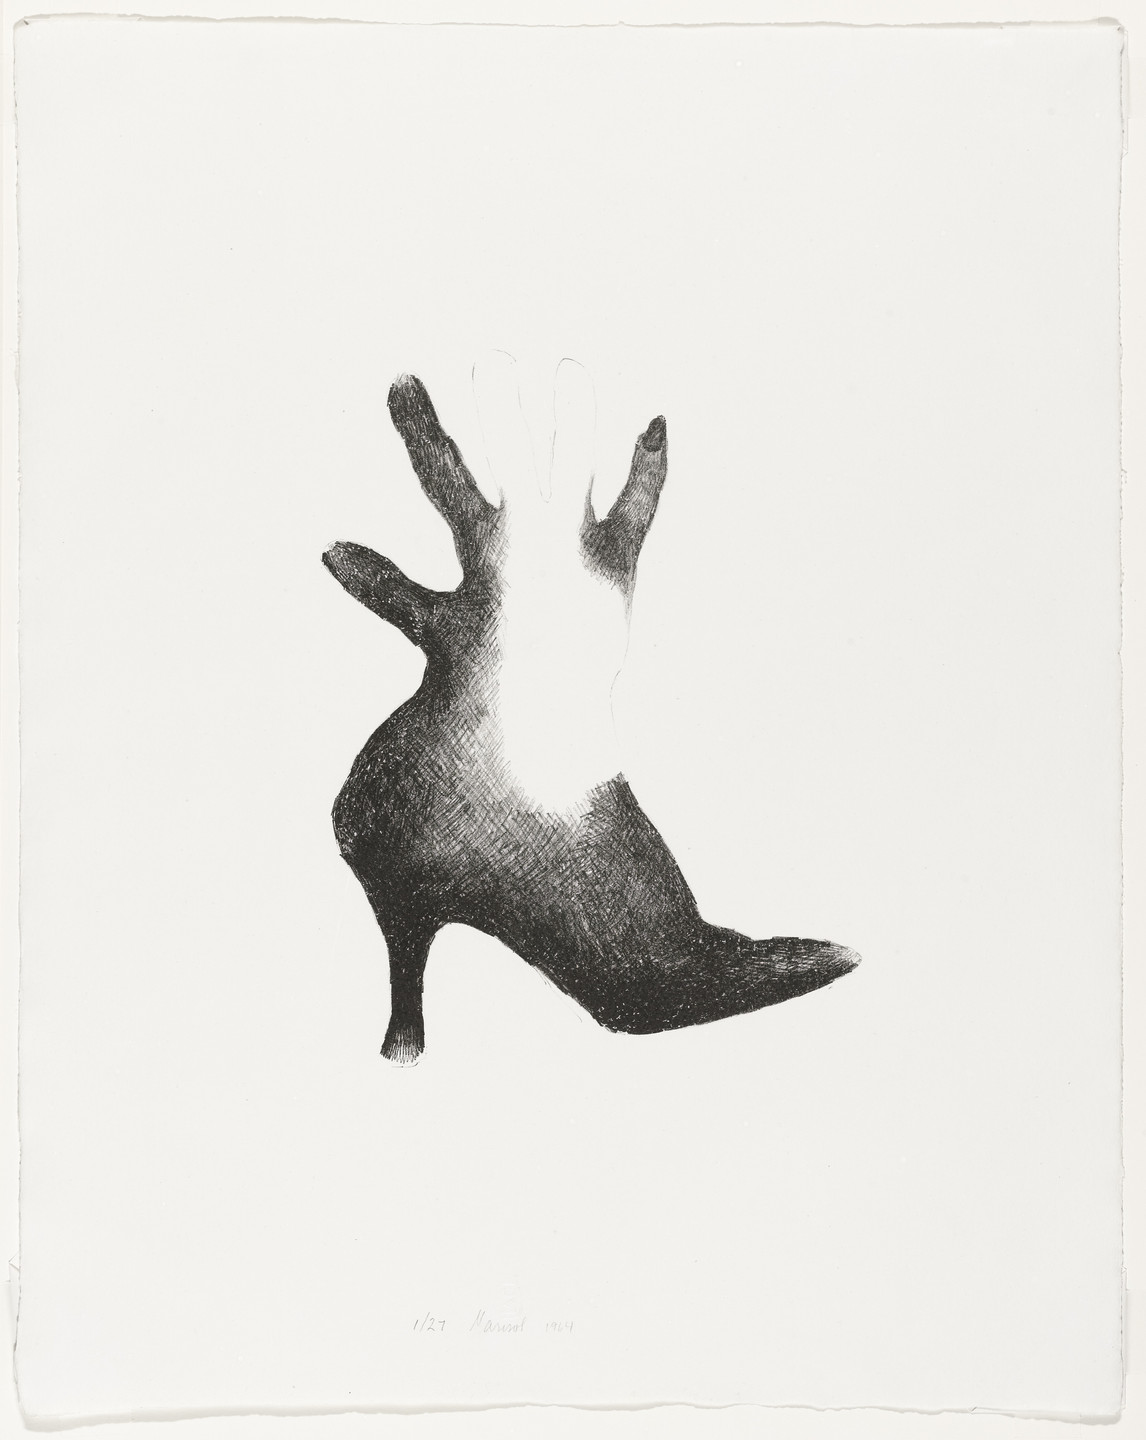 Marisol (Marisol Escobar). Shoe and Hand. 1964